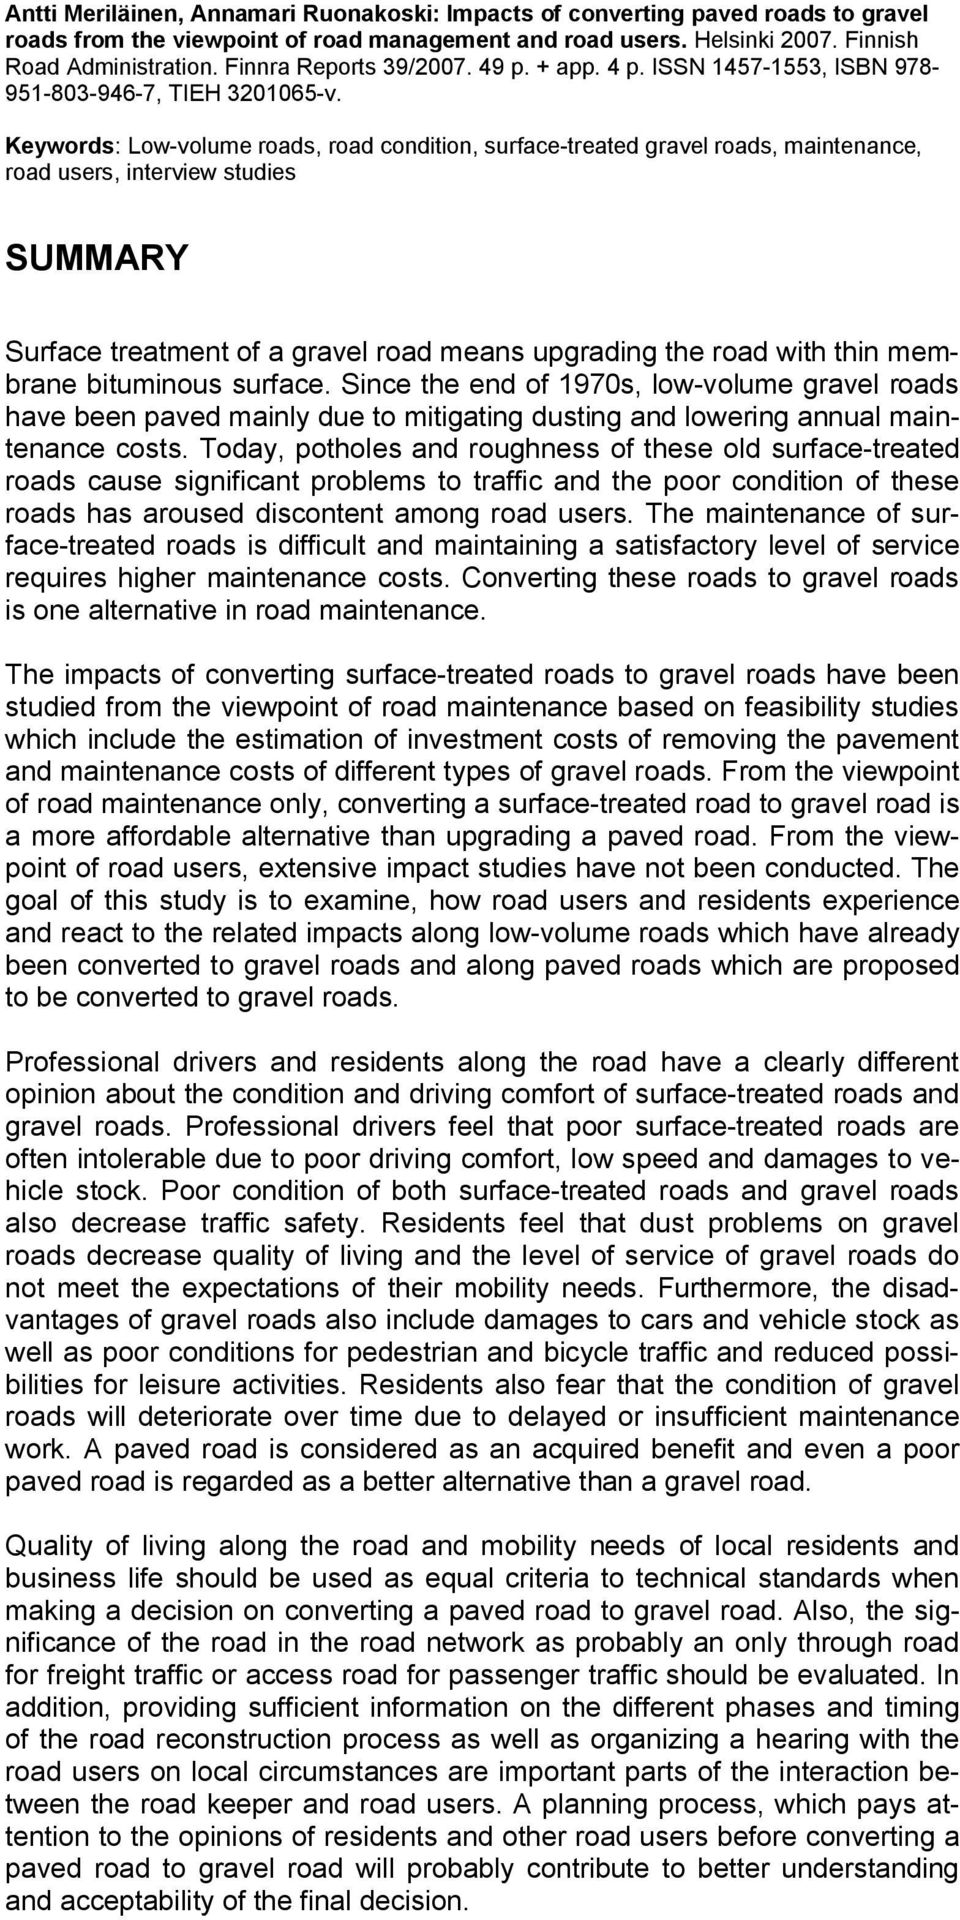 Keywords: Low-volume roads, road condition, surface-treated gravel roads, maintenance, road users, interview studies SUMMARY Surface treatment of a gravel road means upgrading the road with thin